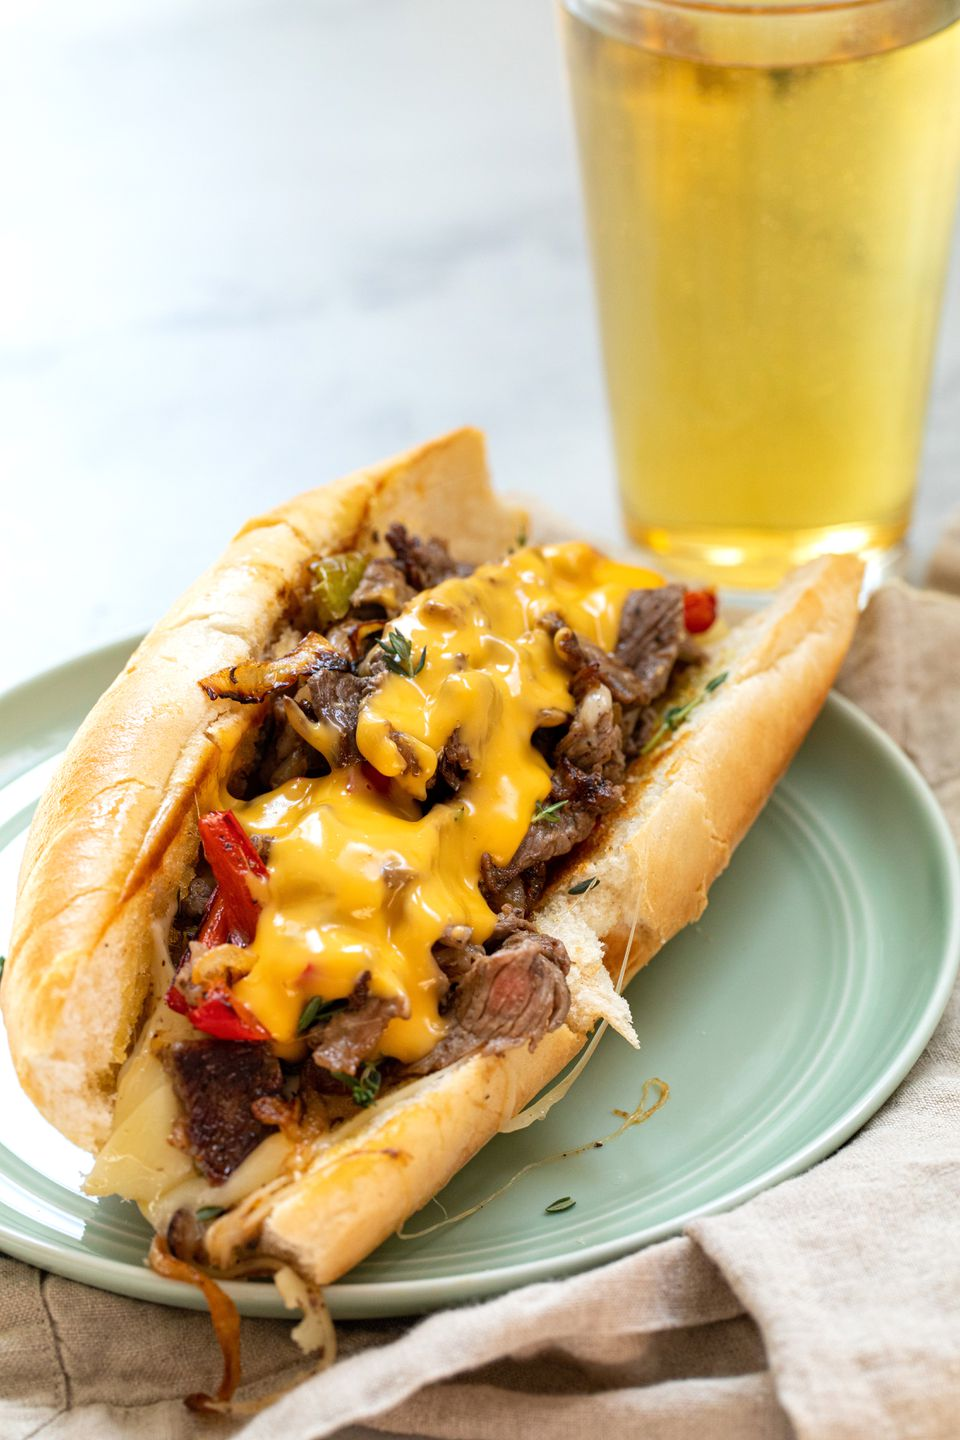 Homemade Philly Cheesesteak on a plate with a tall beer behind it.